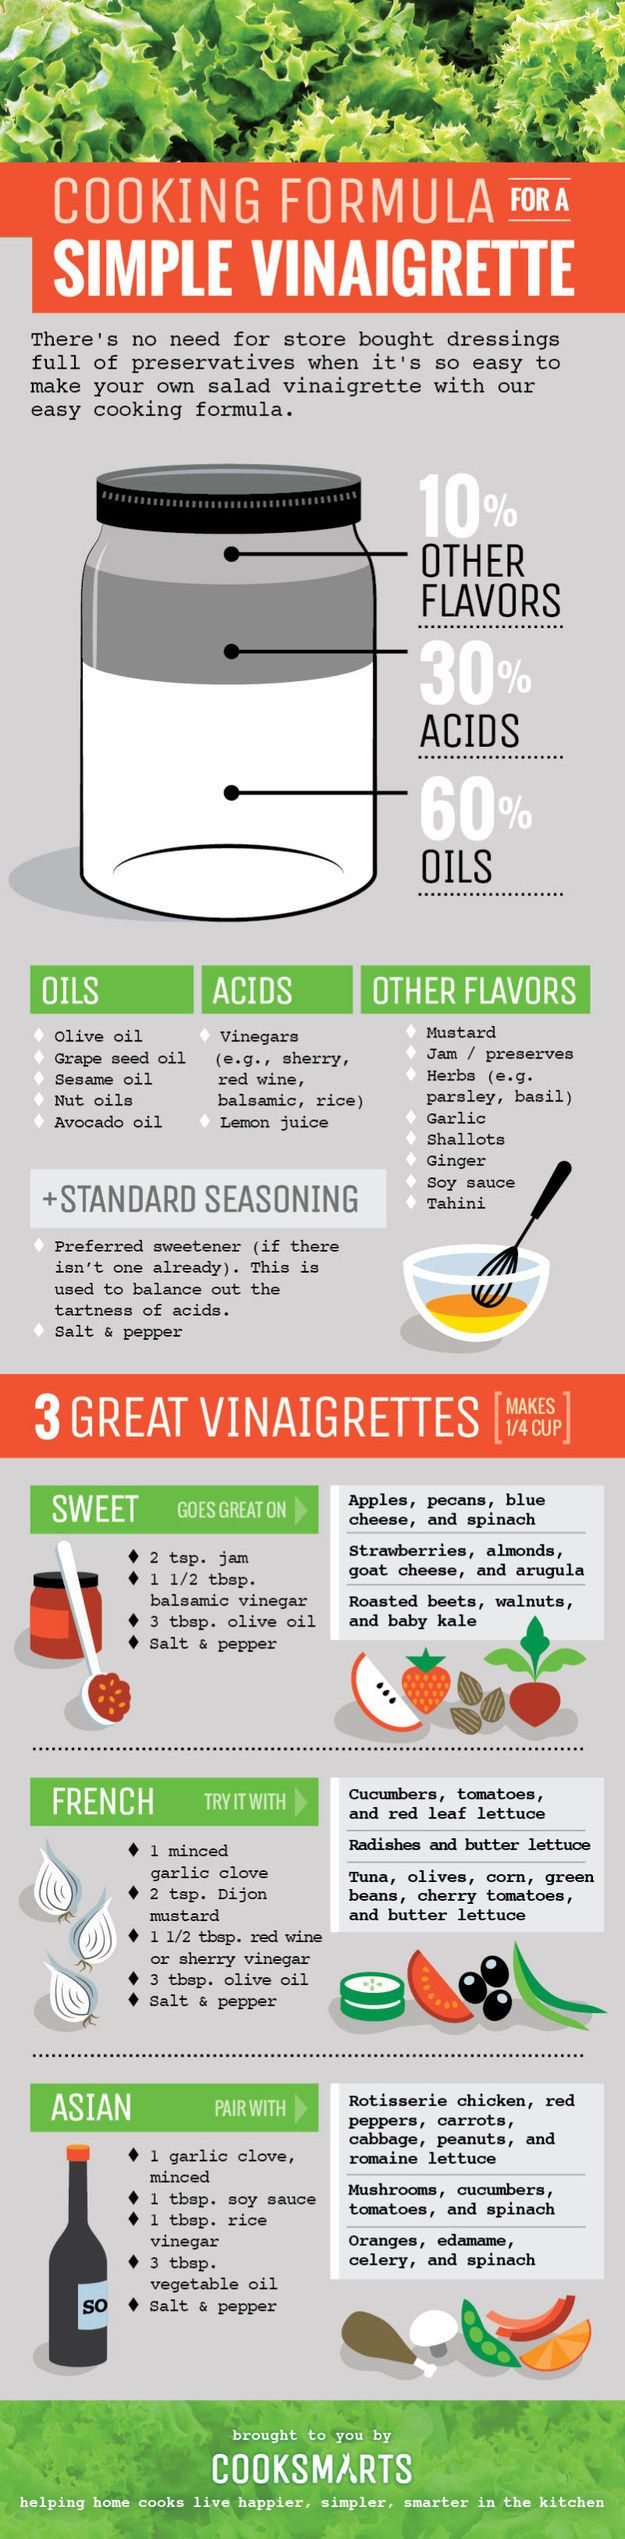 Make your own vinaigrette. **Try a  vinagrette made out of pear juice (the juice that comes in canned pears, specifically) olive oil, and mustard. Little salt/pepper. Use it over a spinach salad with canned bartlett pears, pecans, bleu cheese, and sometimes cherry tomatoes.